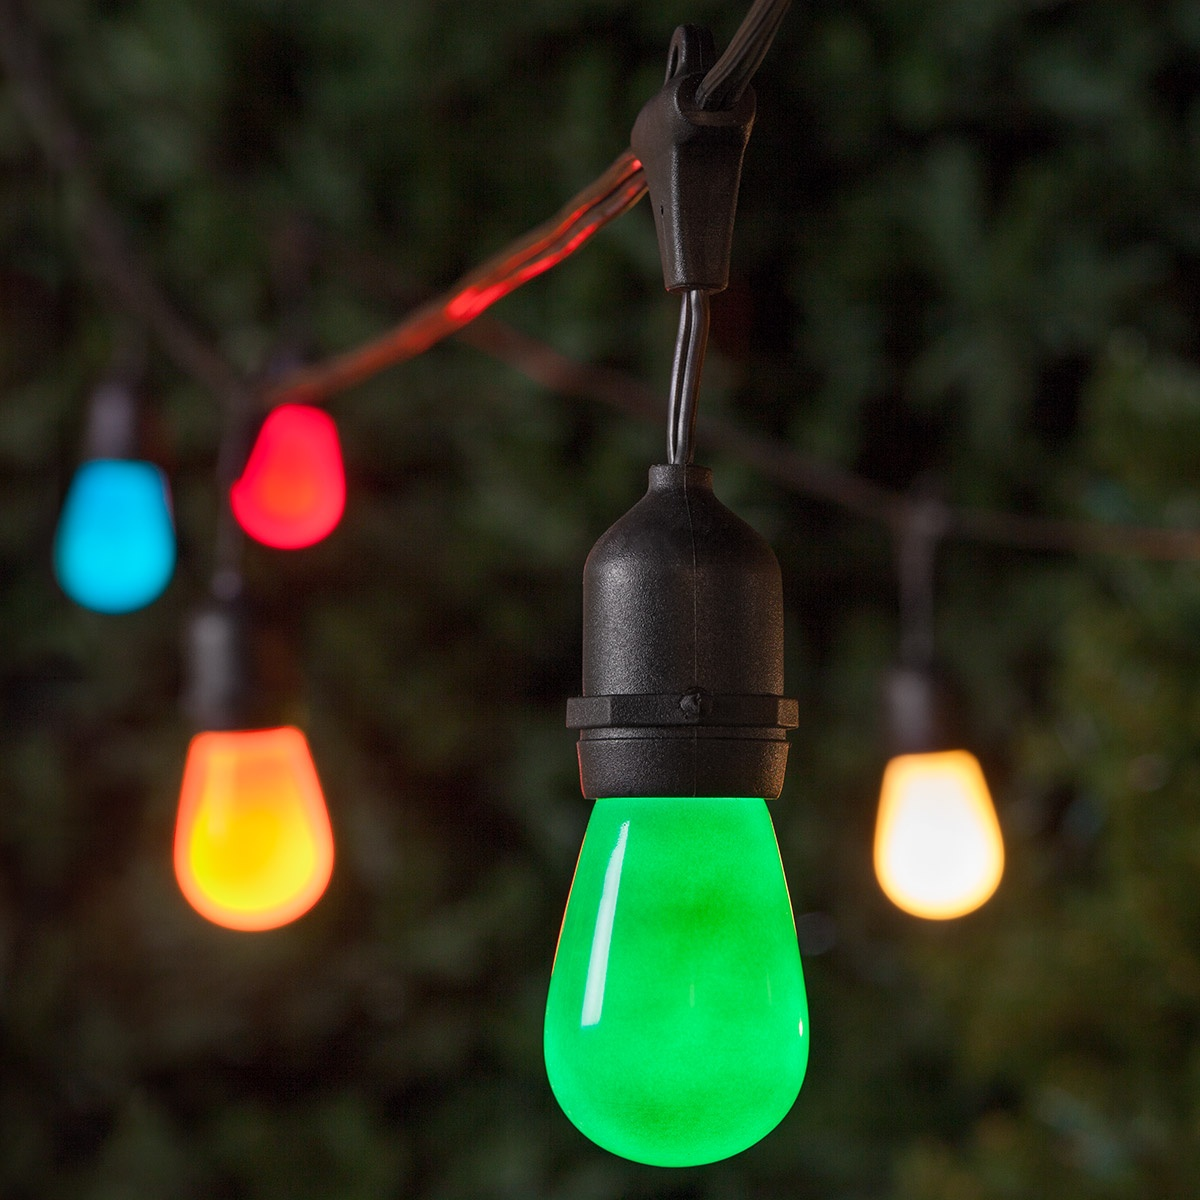 Commercial Patio String Lights, Multicolor S14 Opaque